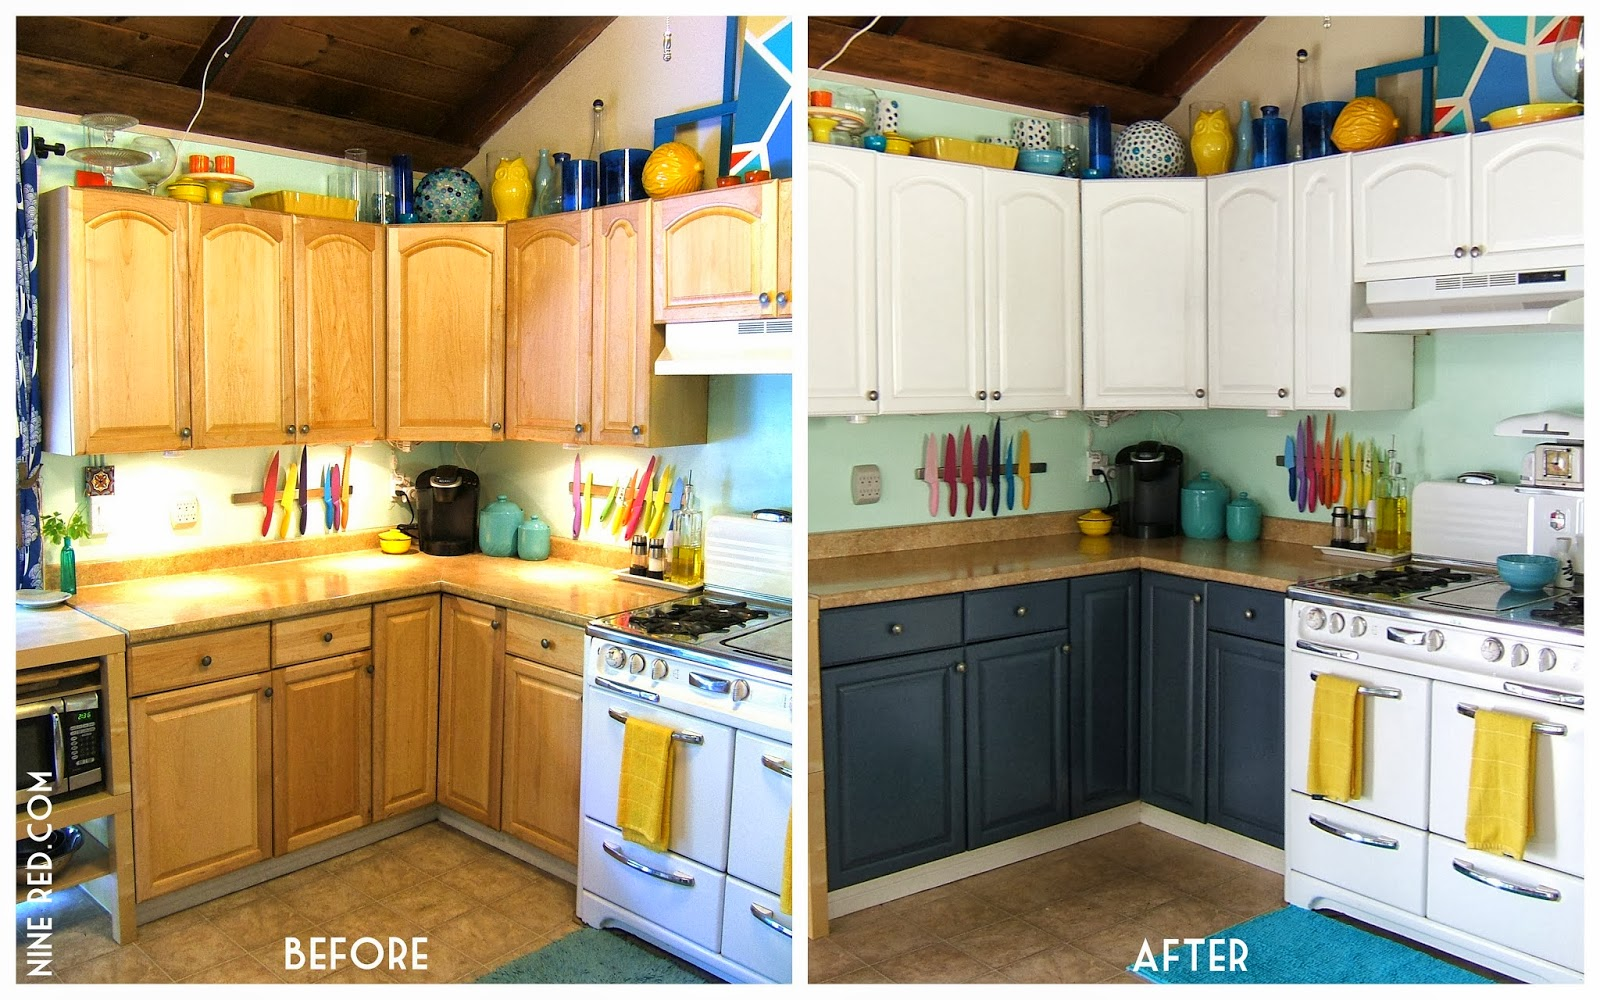 painting kitchen cabinets part 2 spray painting kitchen cabinets Painting the Kitchen Cabinets Part 2